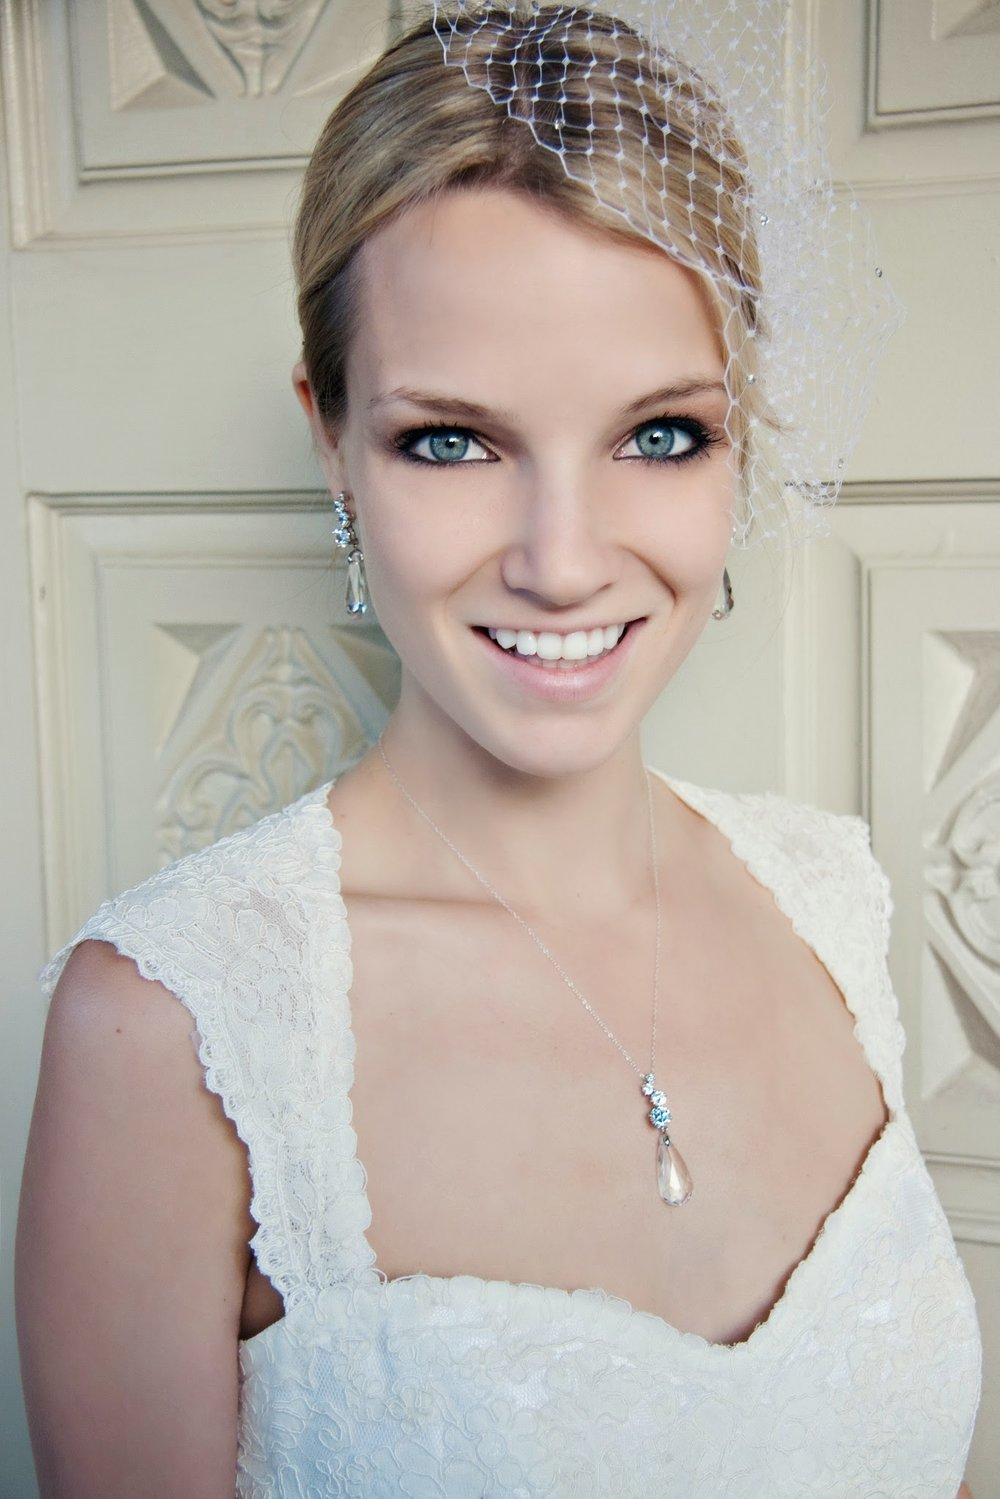 Bridal Jewelry Set - Swarovski Jewelry